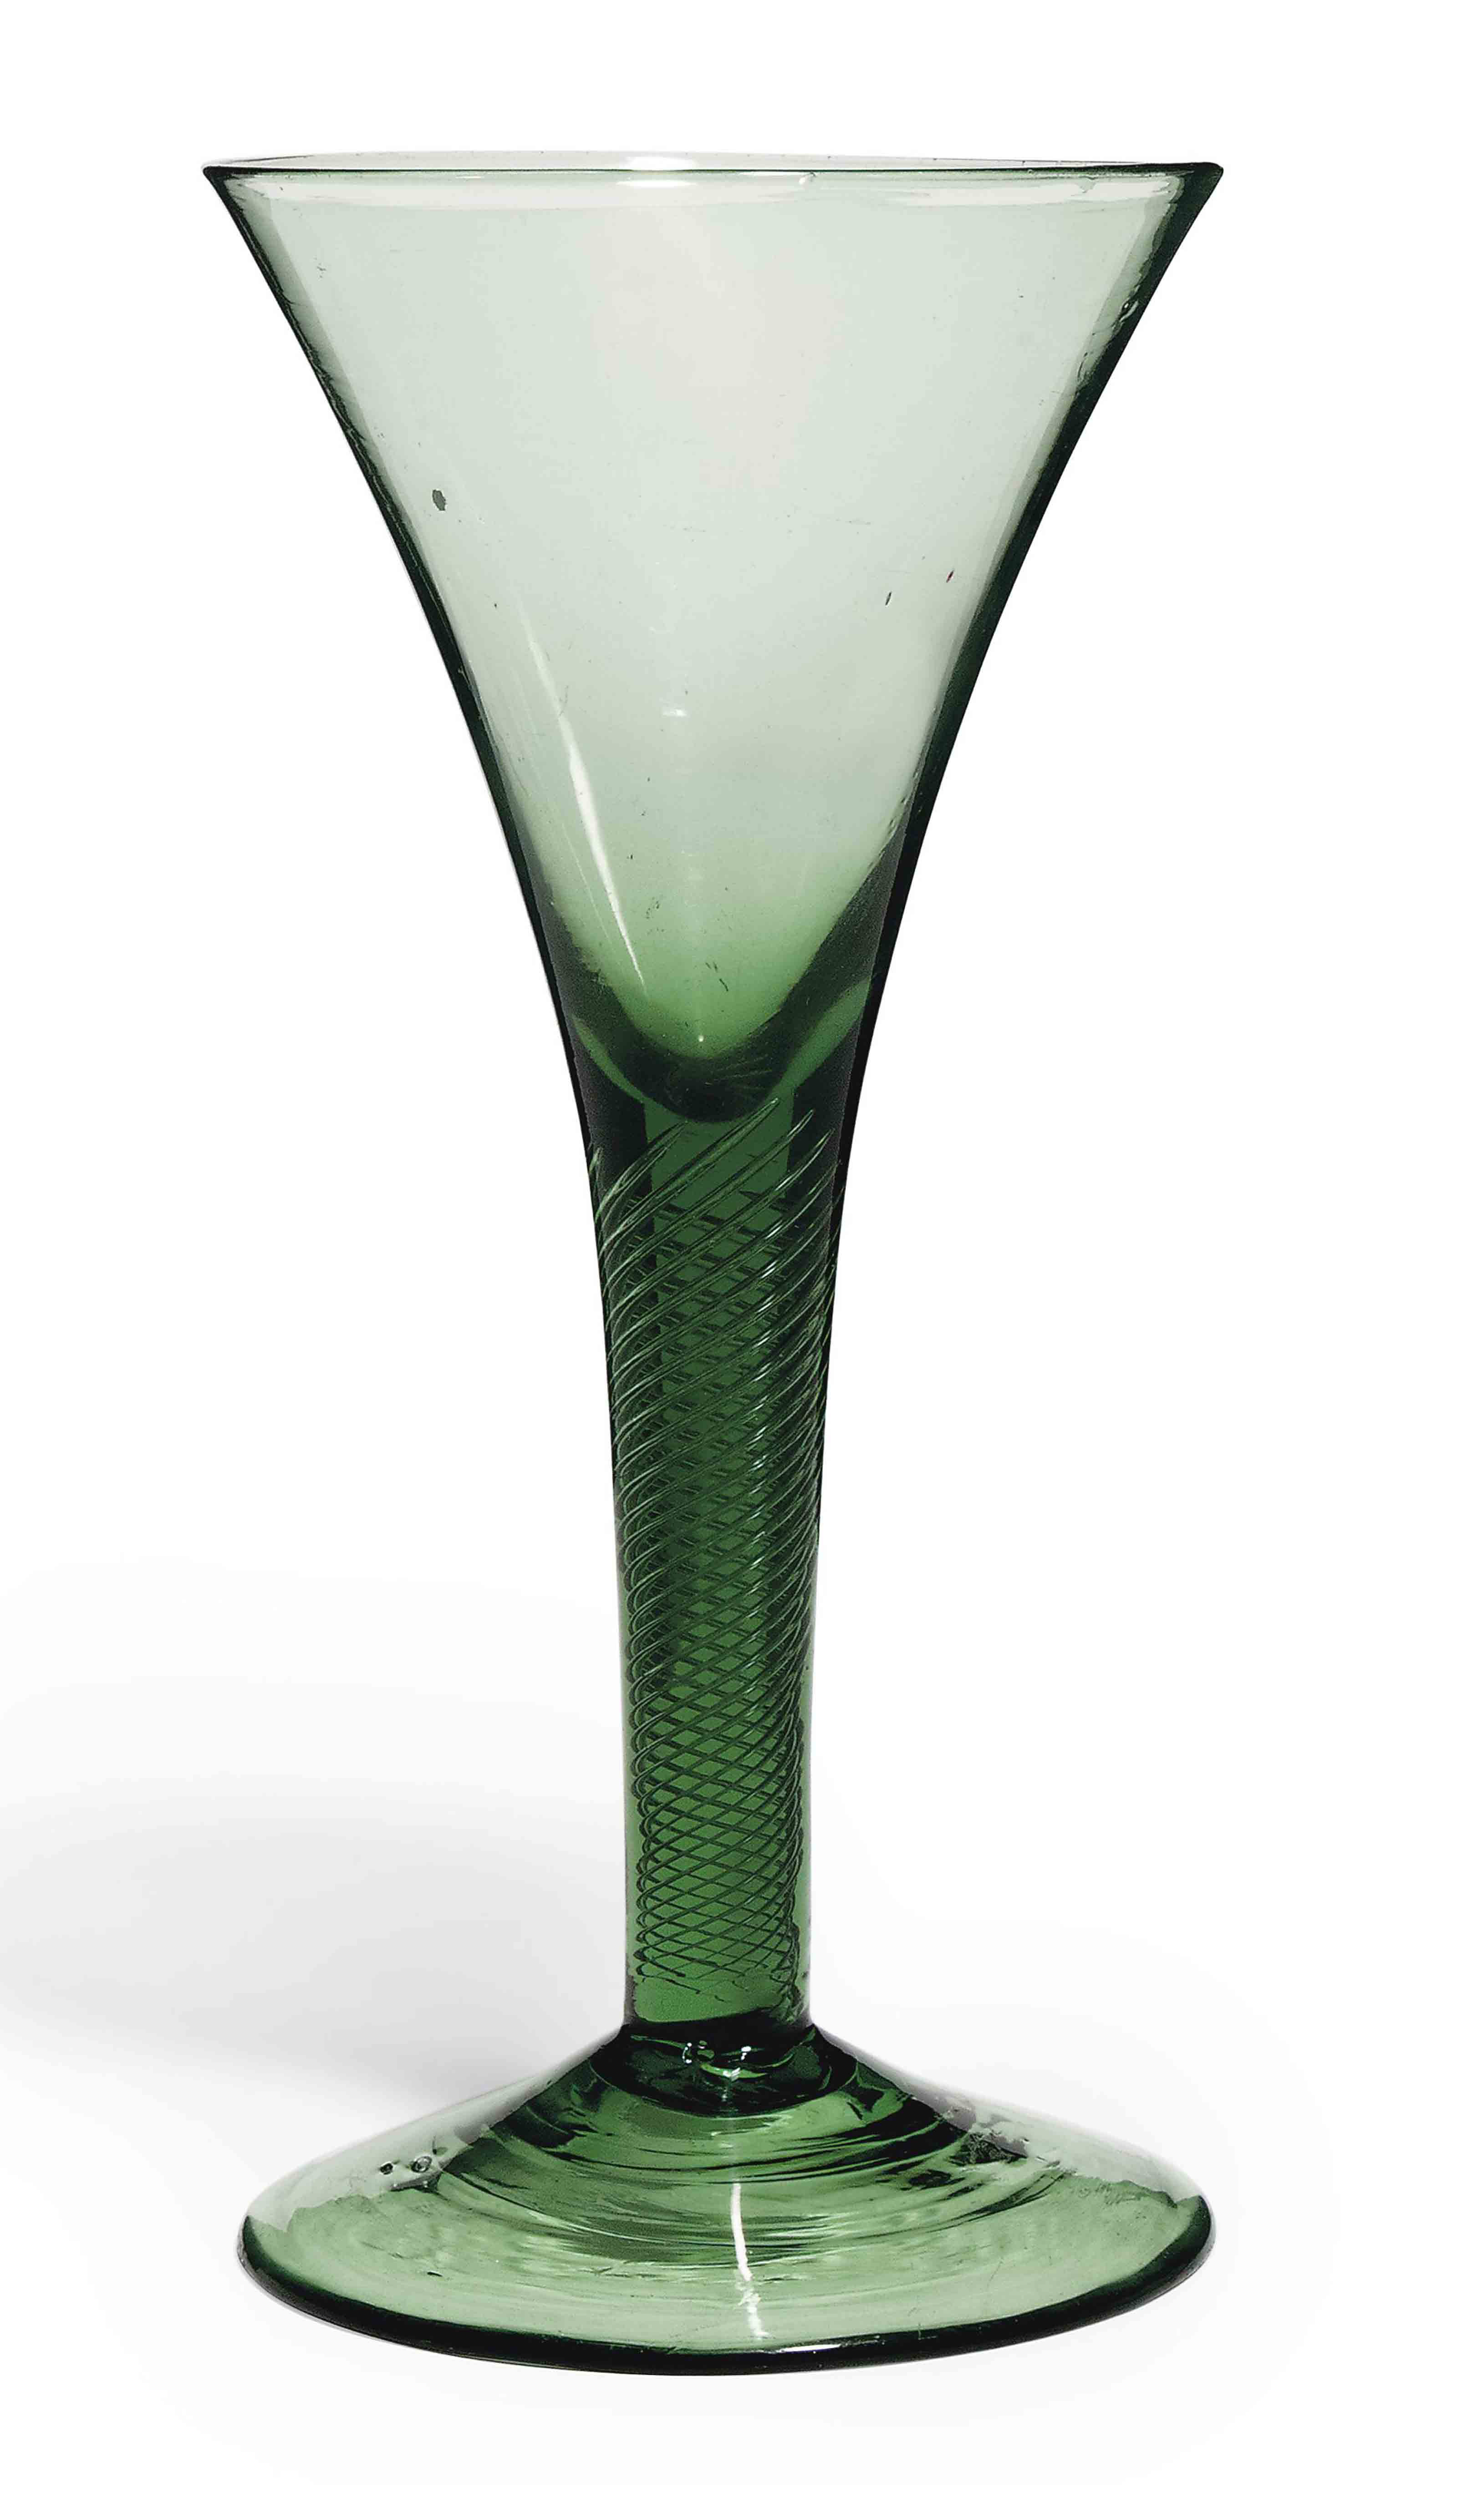 A GREEN-TINTED WINE GLASS